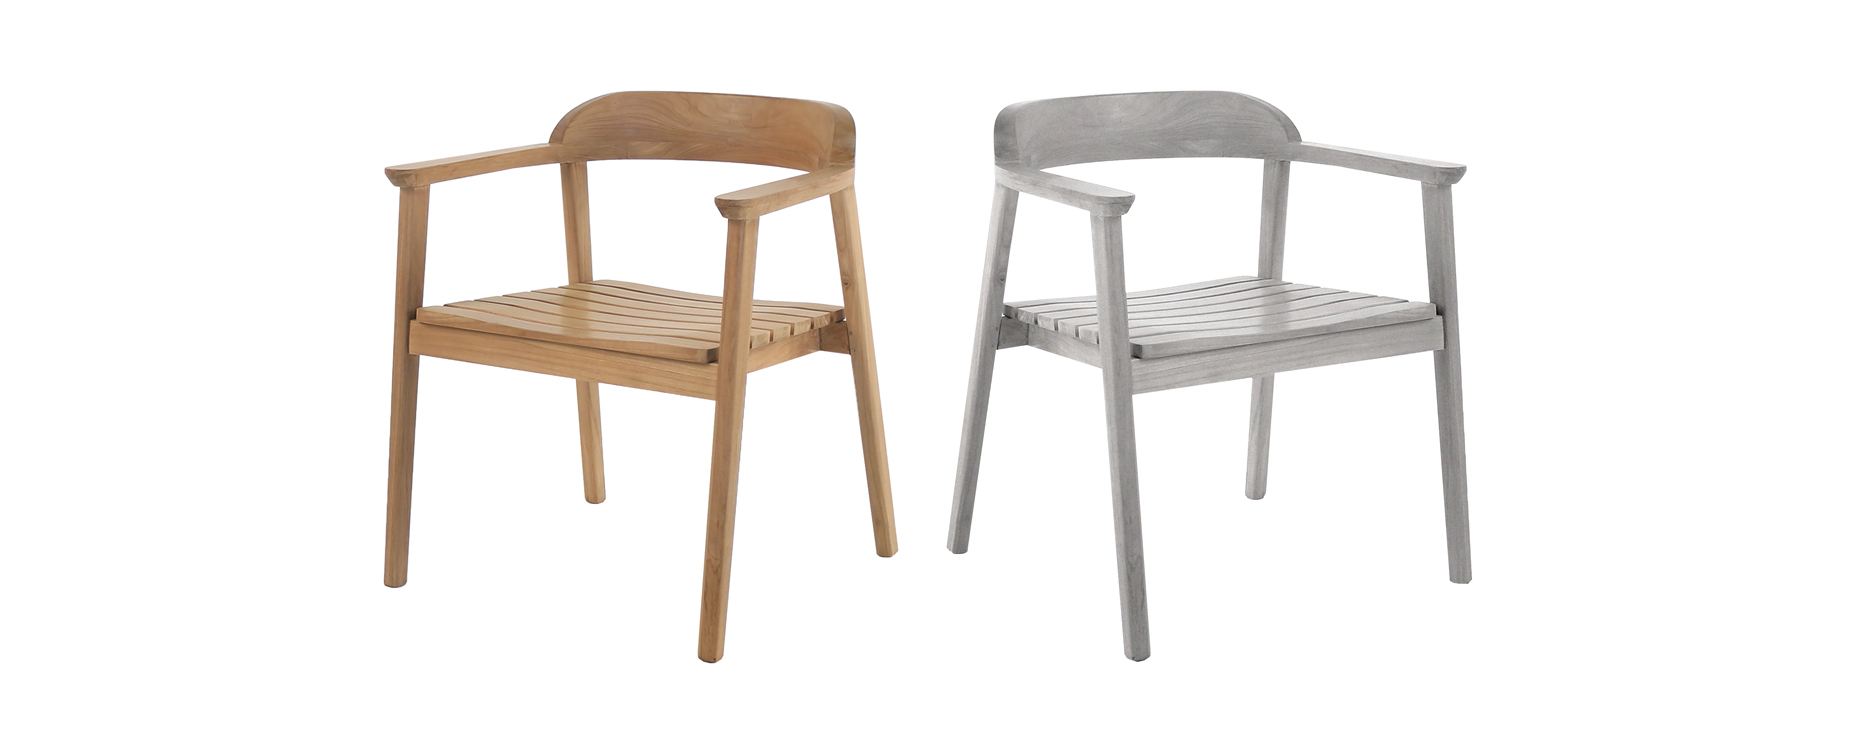 Teak wood chairs: Comparison of Finished and Weathered